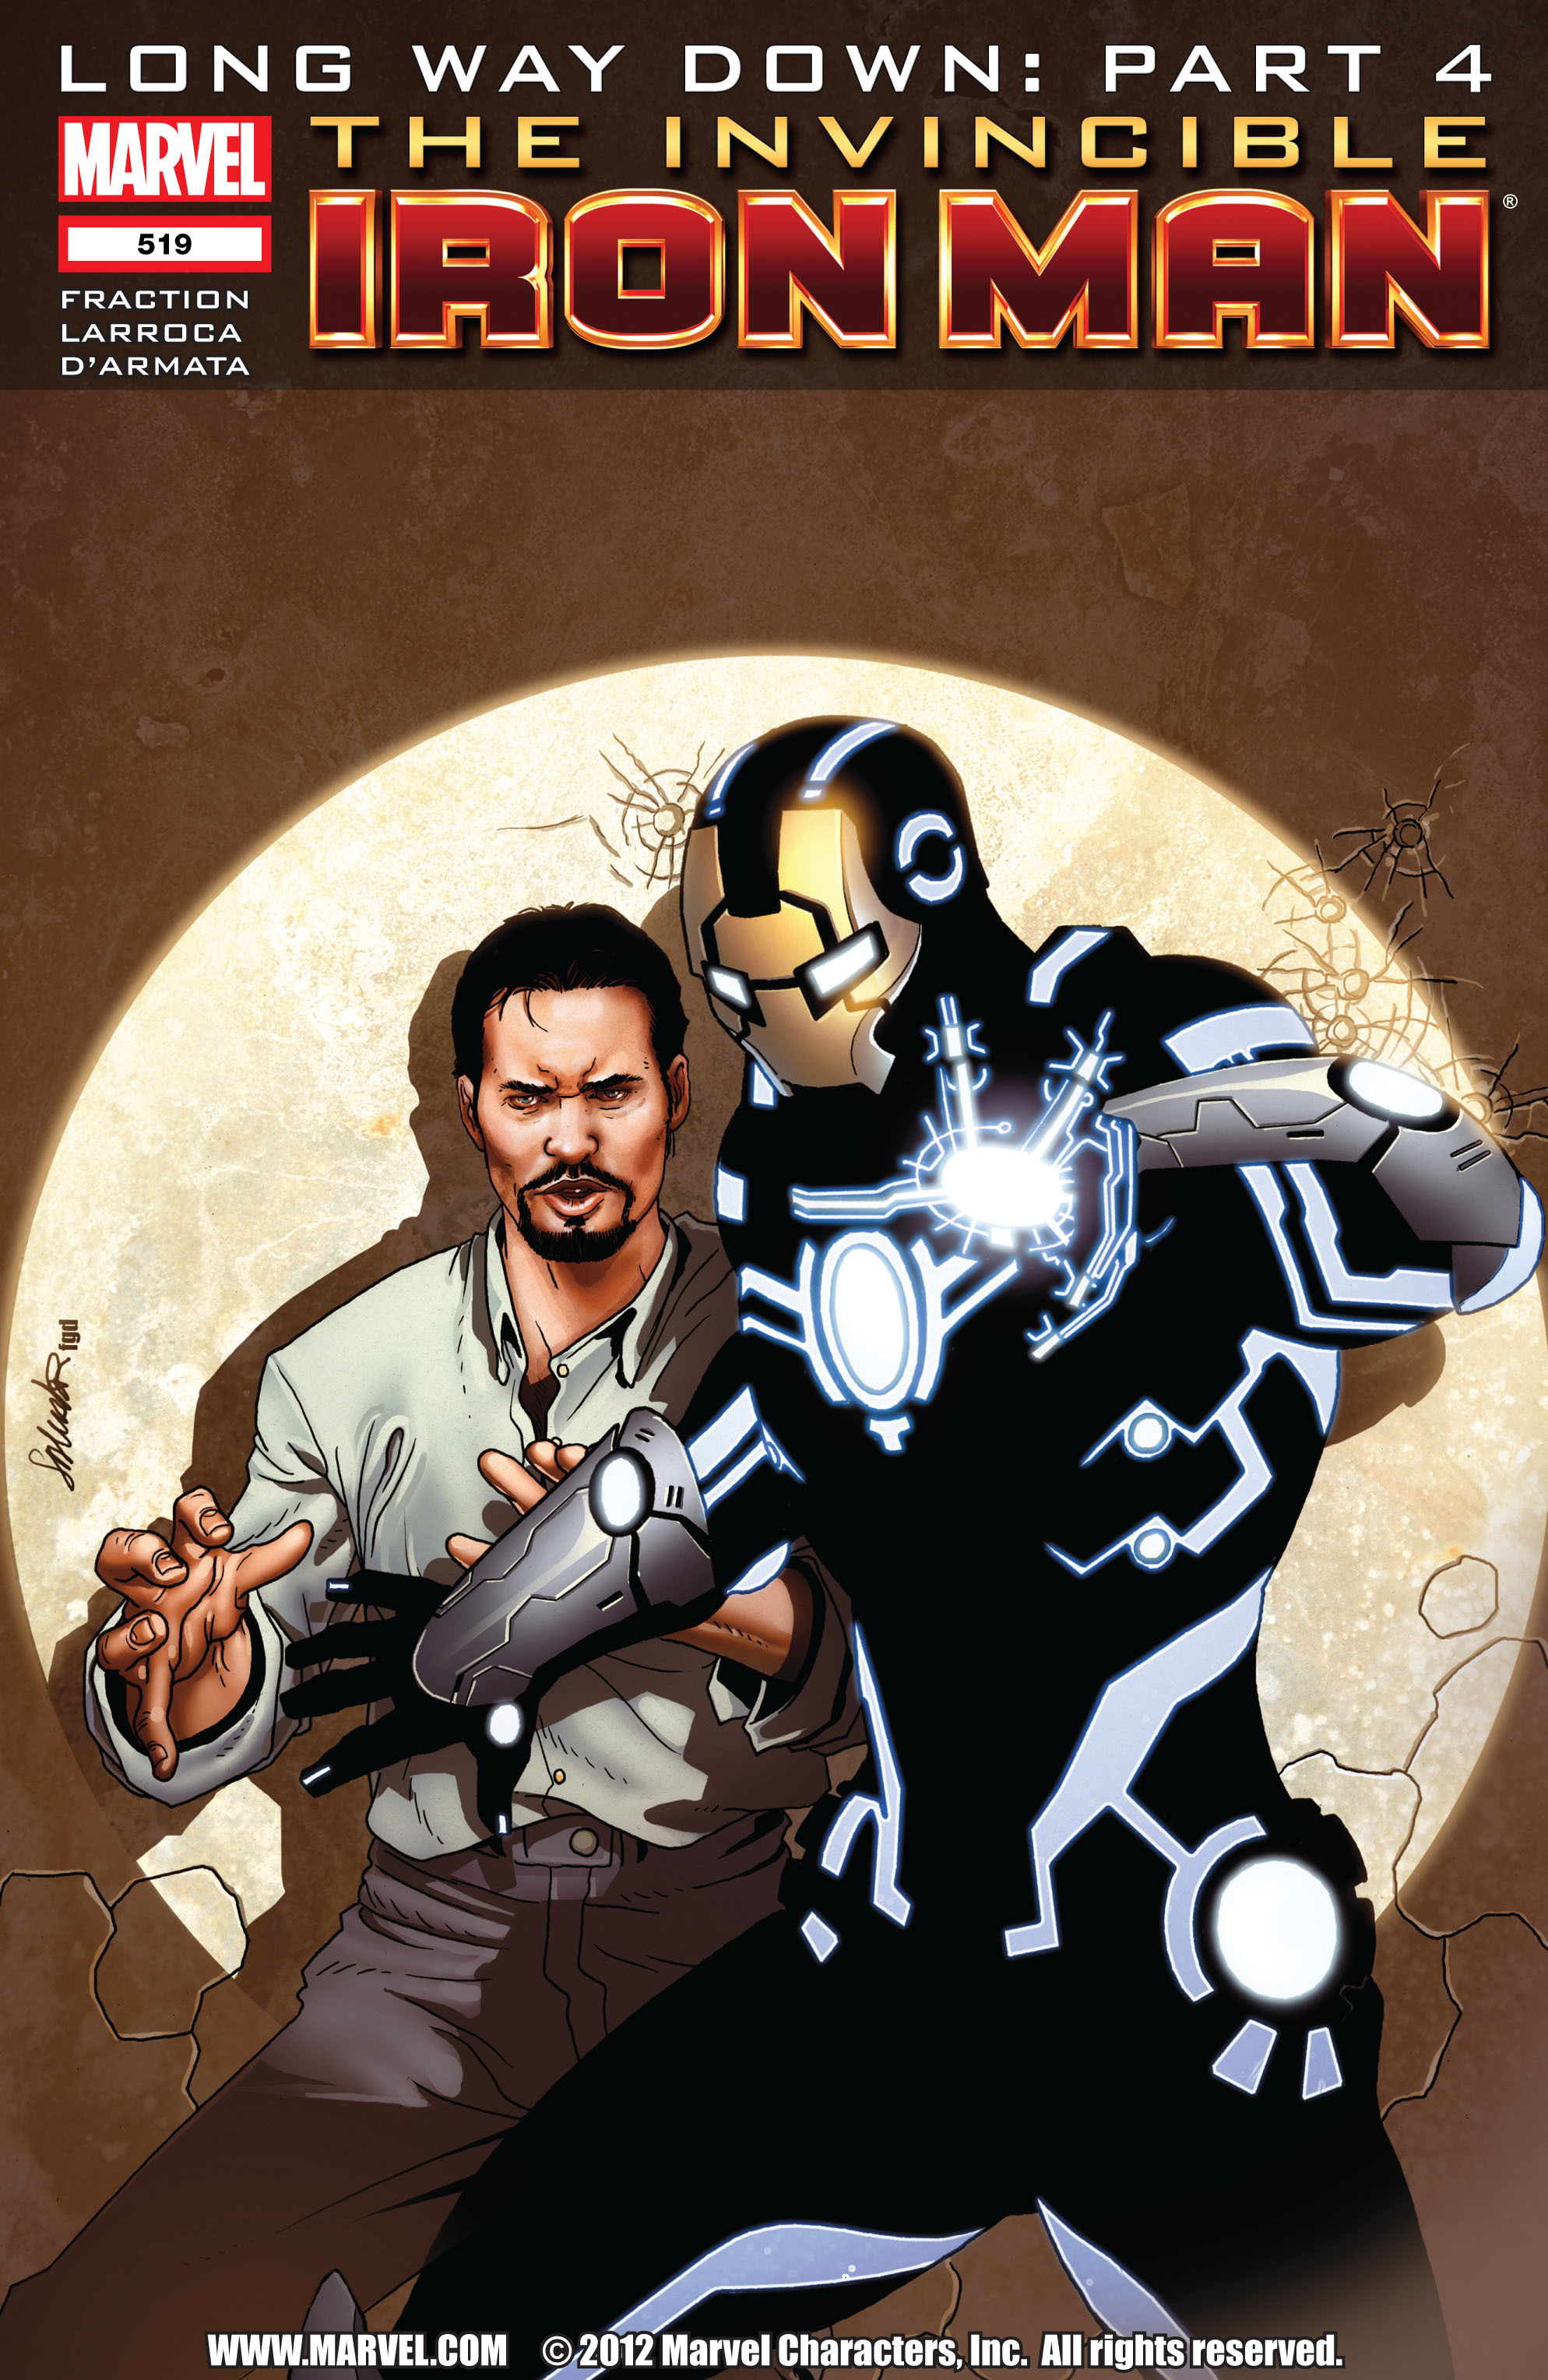 Invincible Iron Man (2008) 519 Page 1